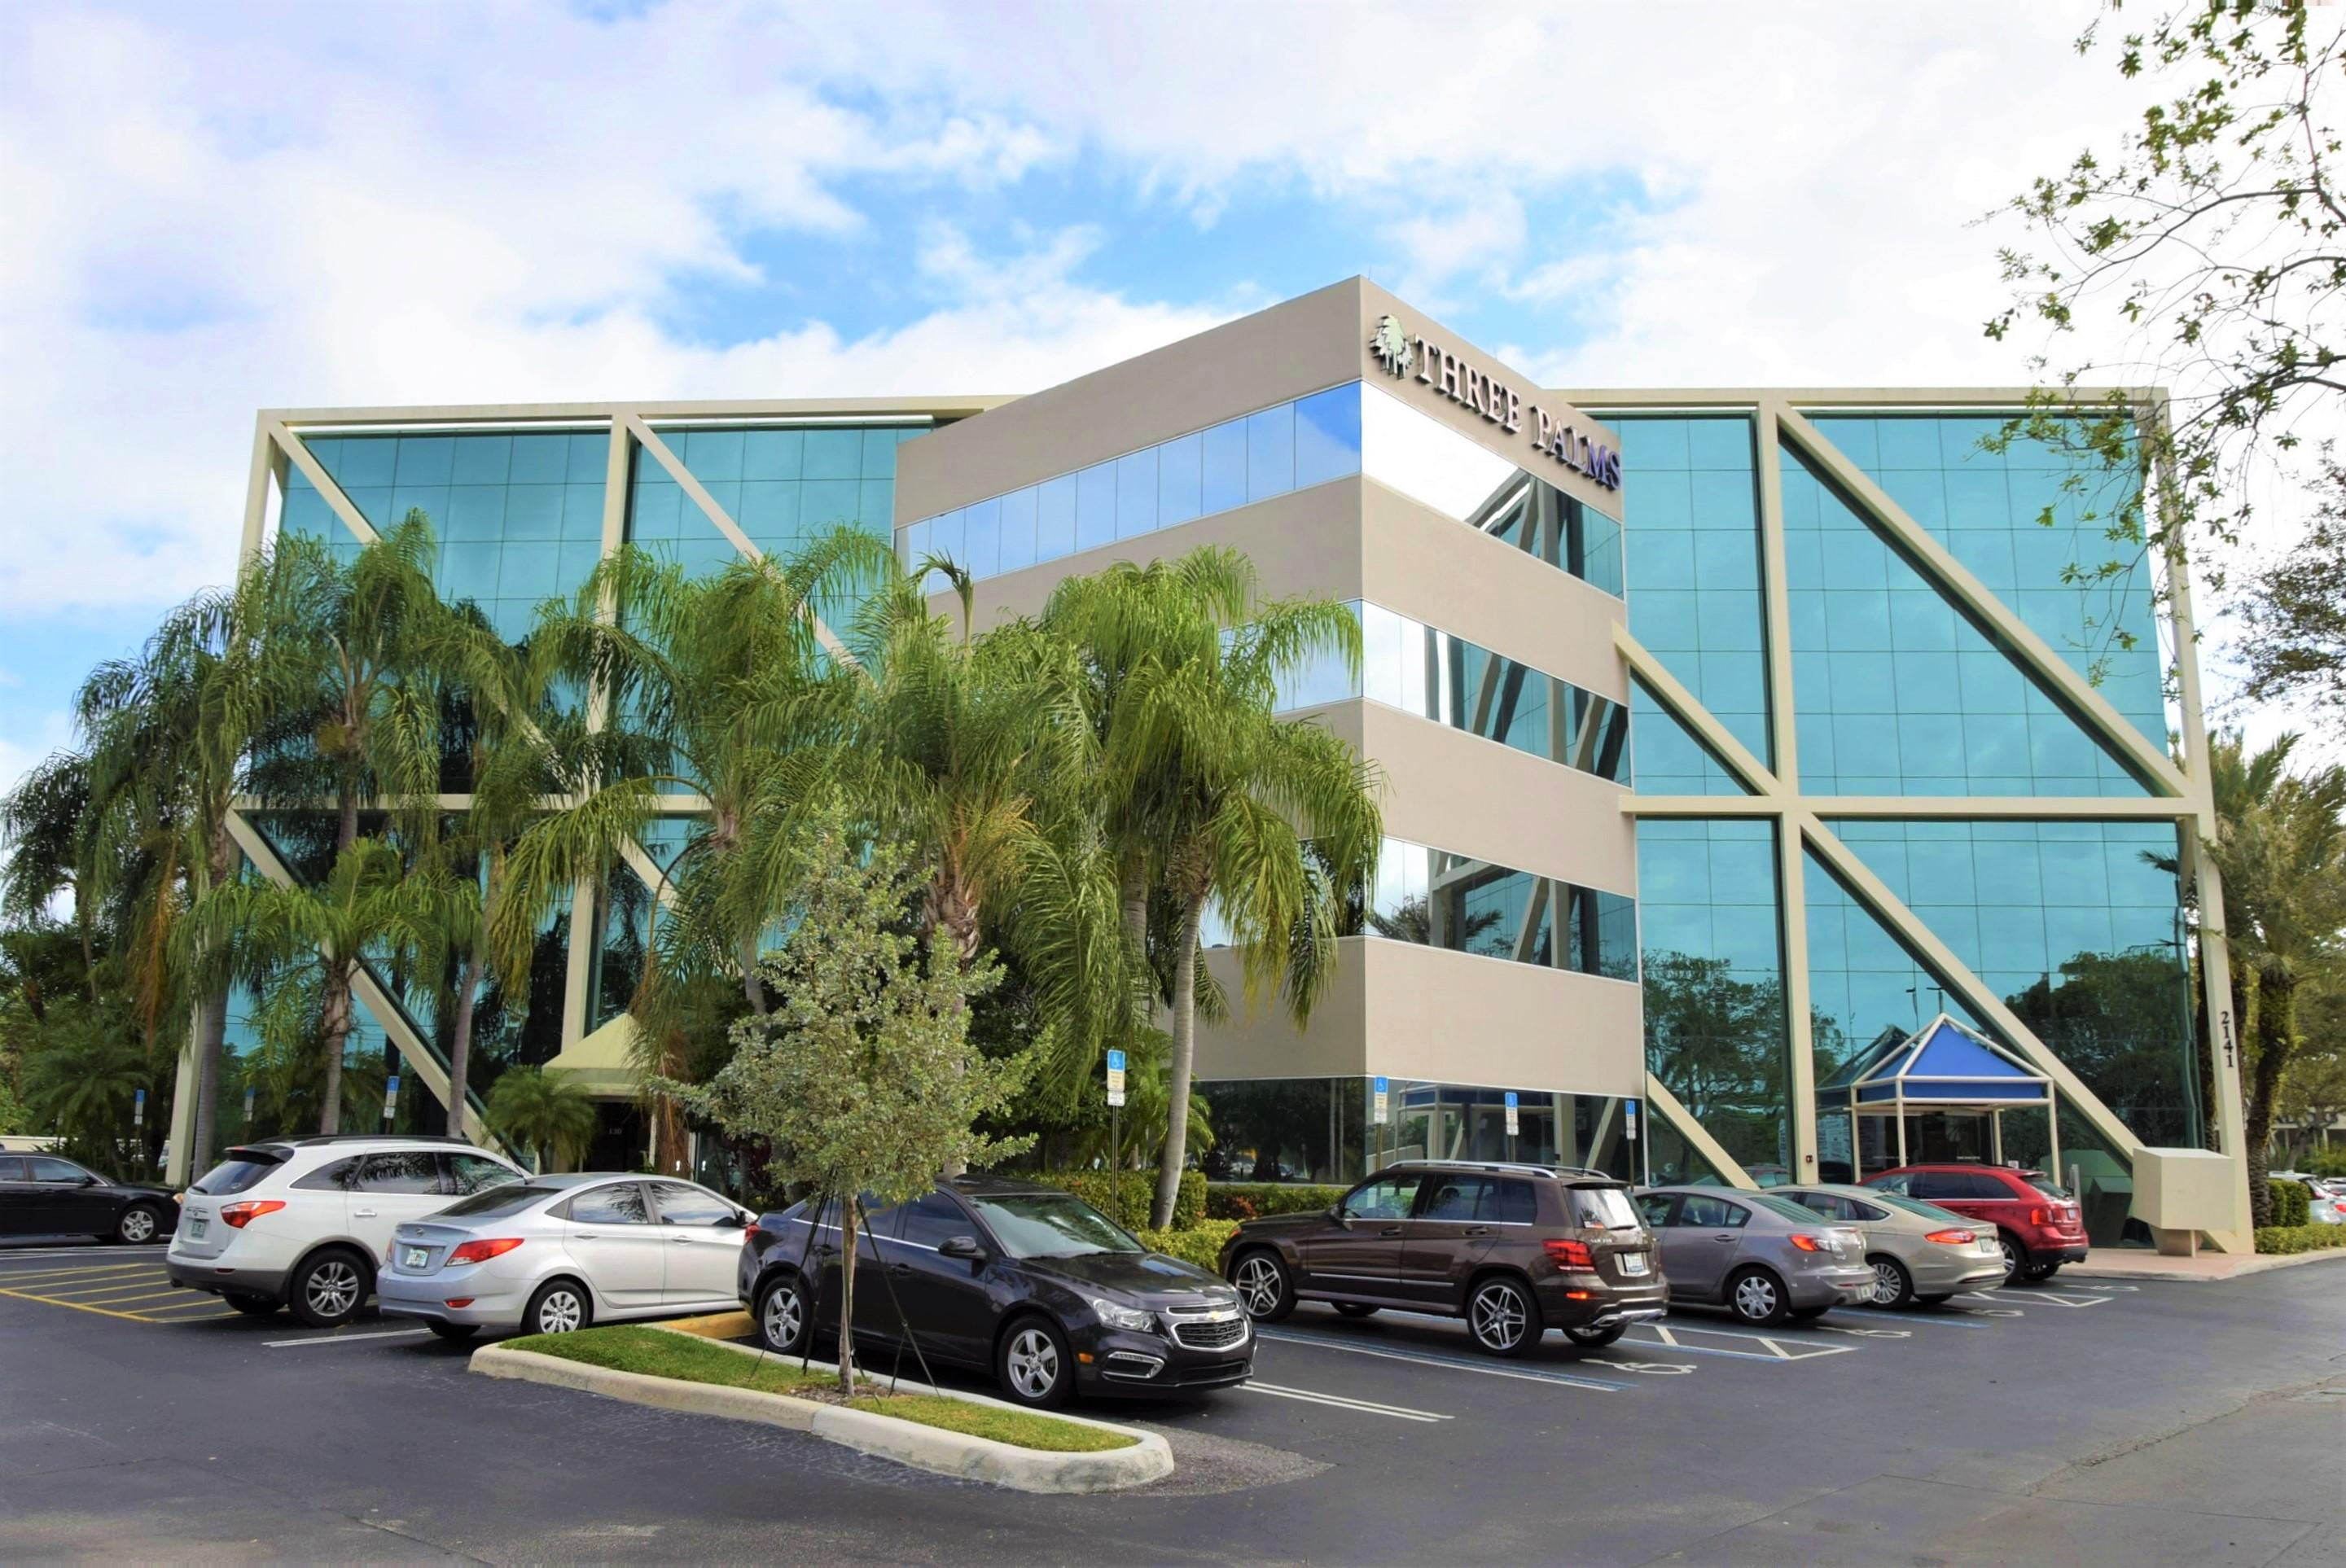 2141 S Alternate A1a Unit 400, Jupiter, Florida 33477